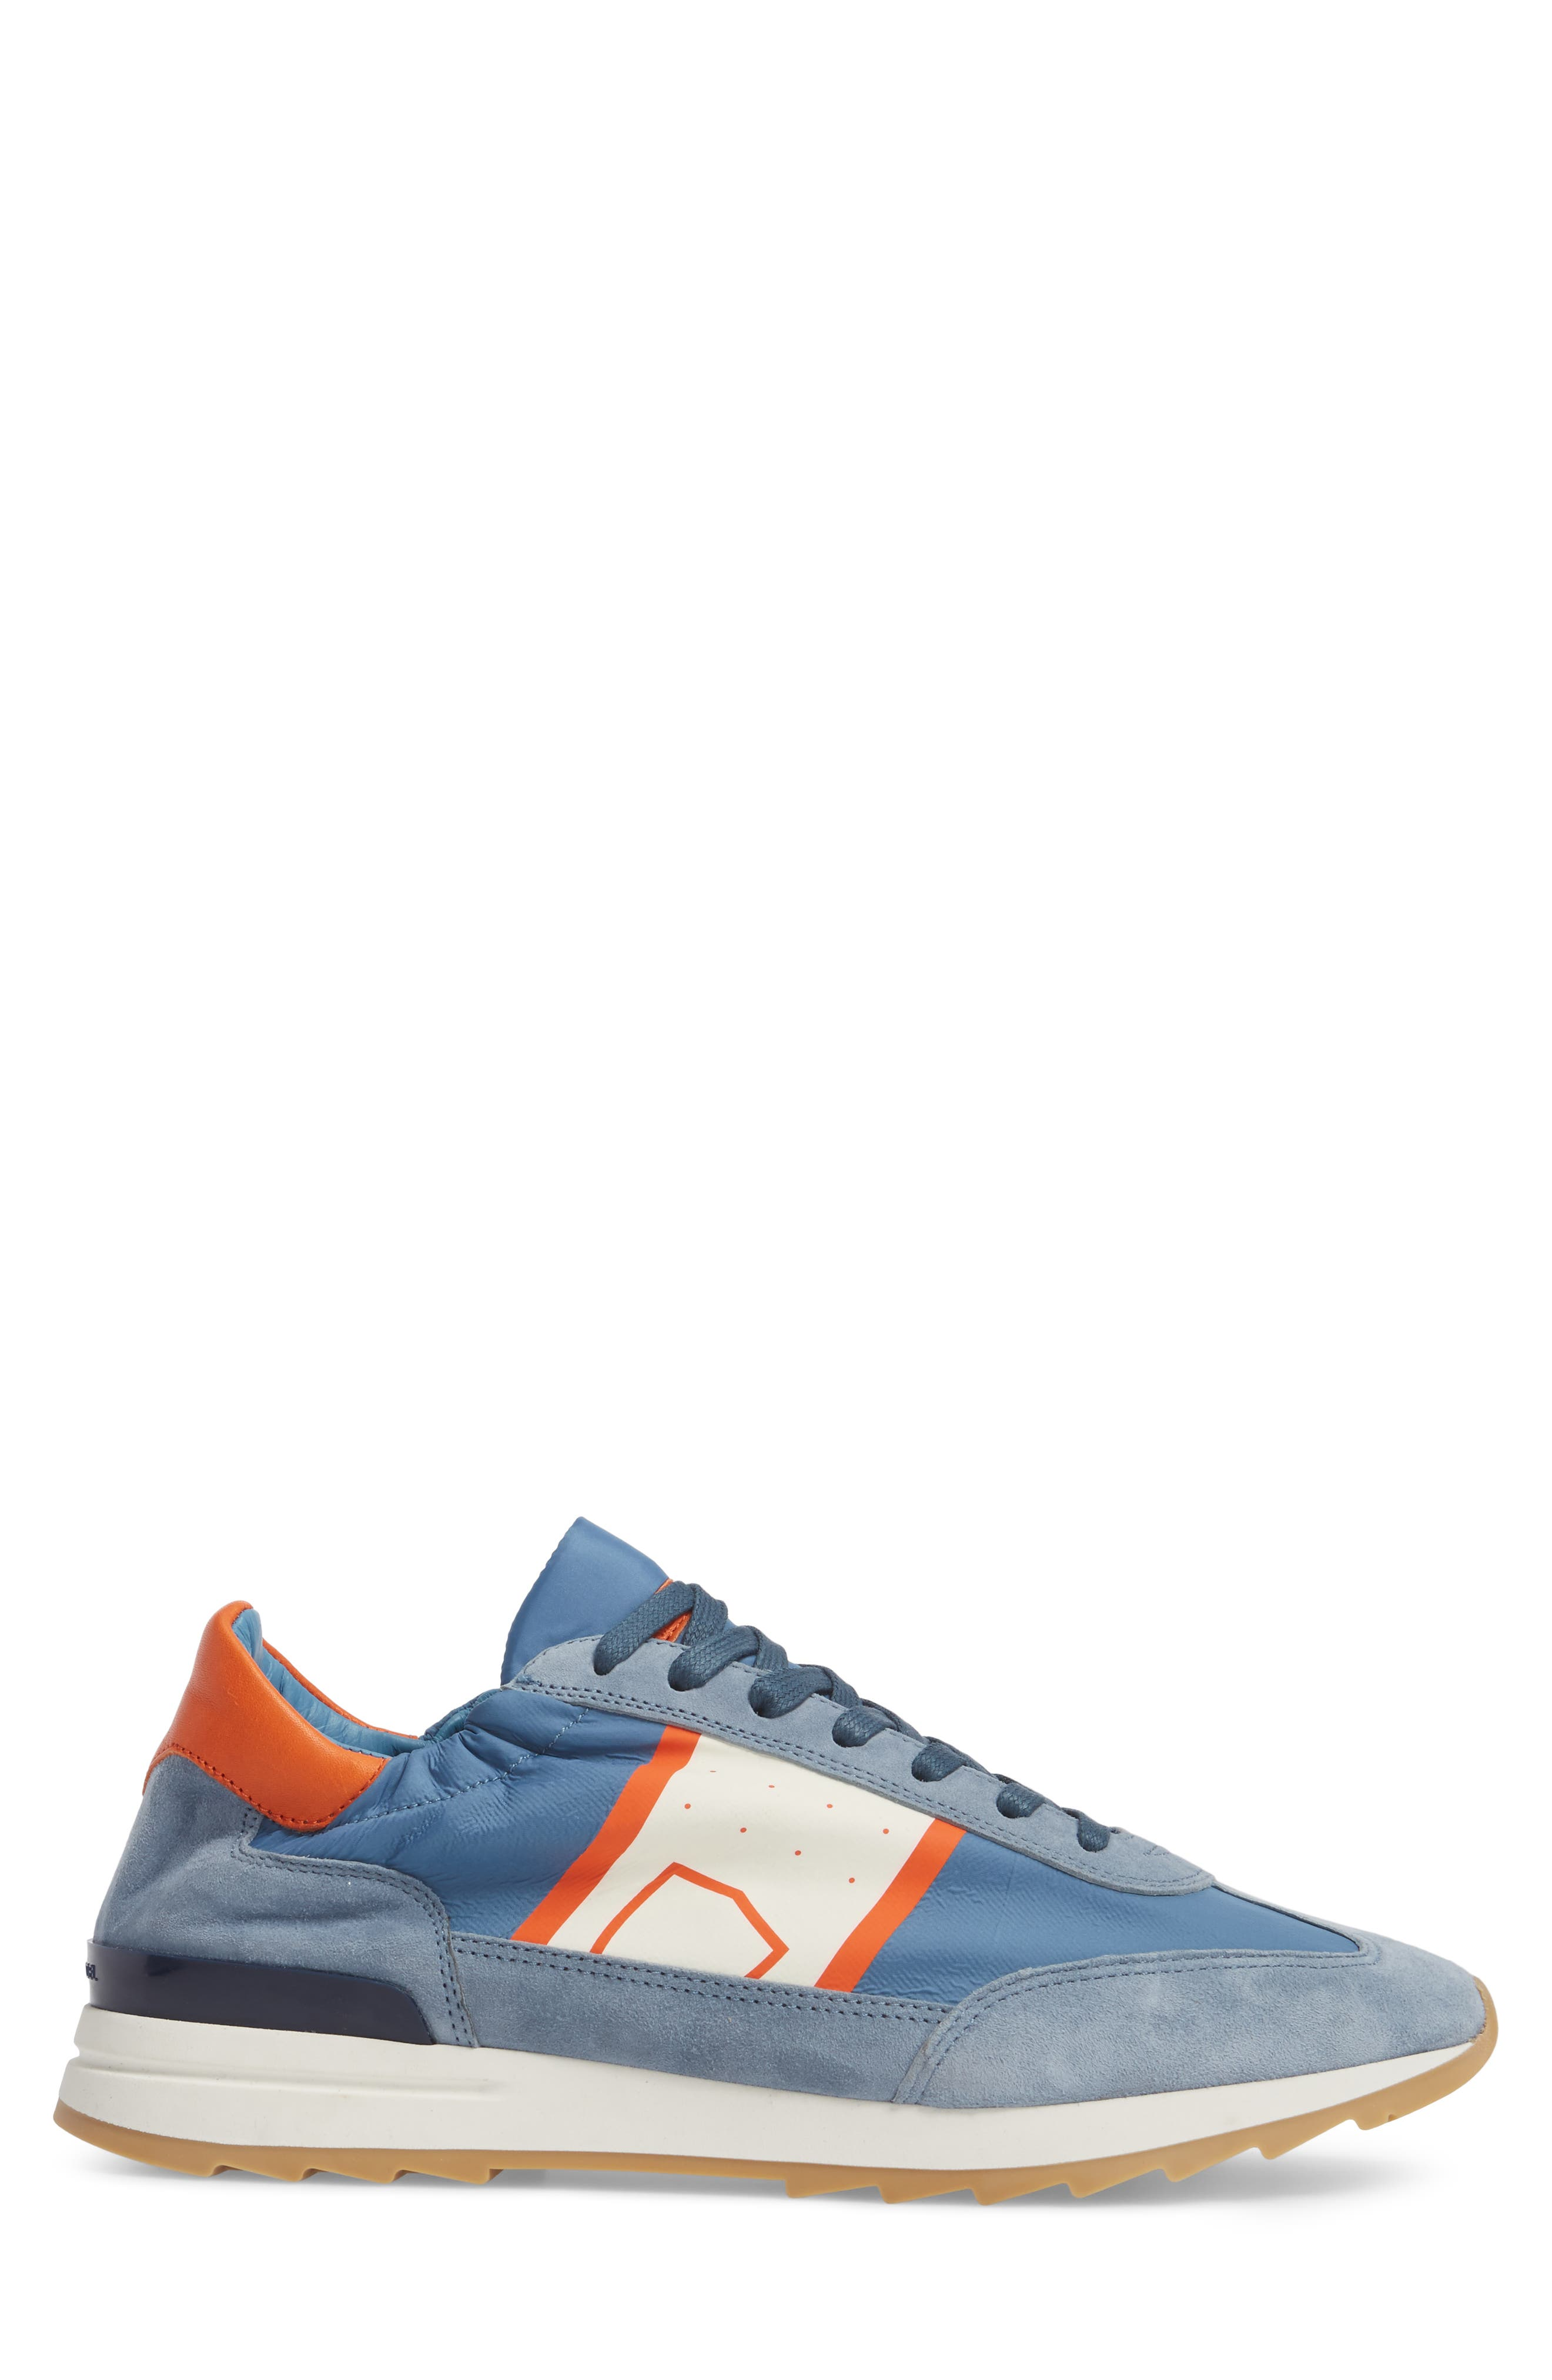 Toujours Sneaker,                             Alternate thumbnail 3, color,                             Blue/ White